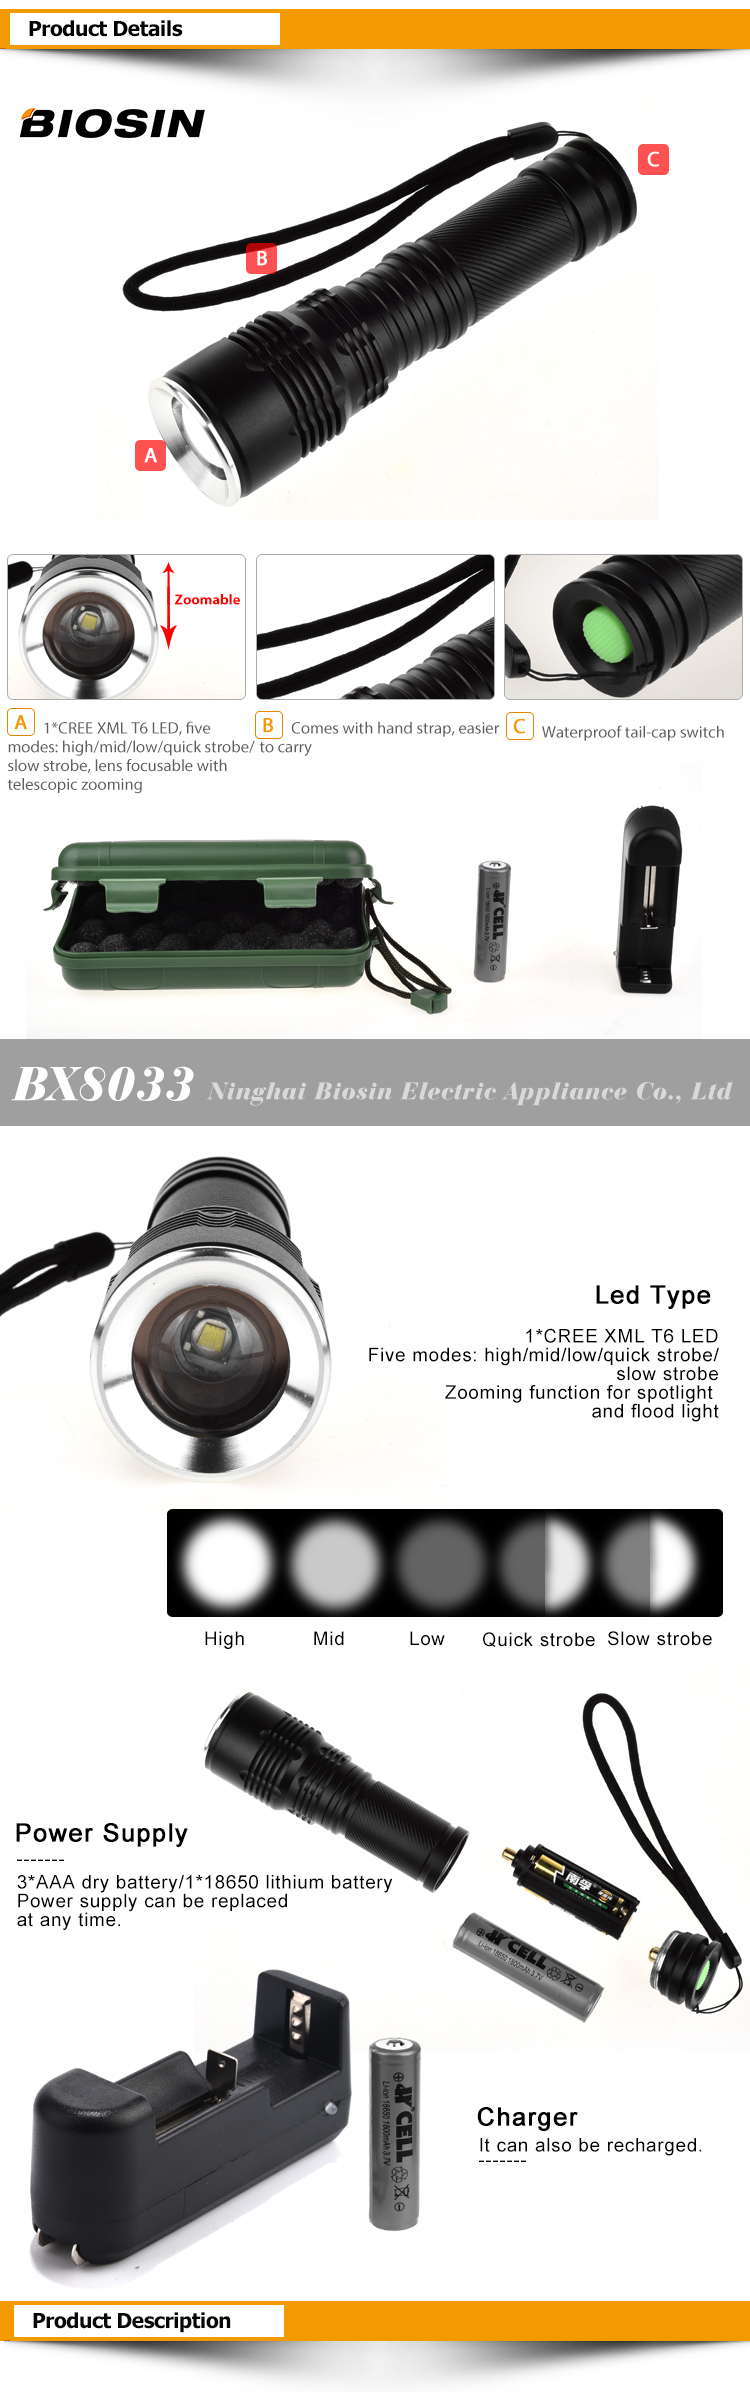 BIOSIN manufacturer logo printed best quality aluminium alloy long distance rechargeable tactical 1000 lumen flashlight